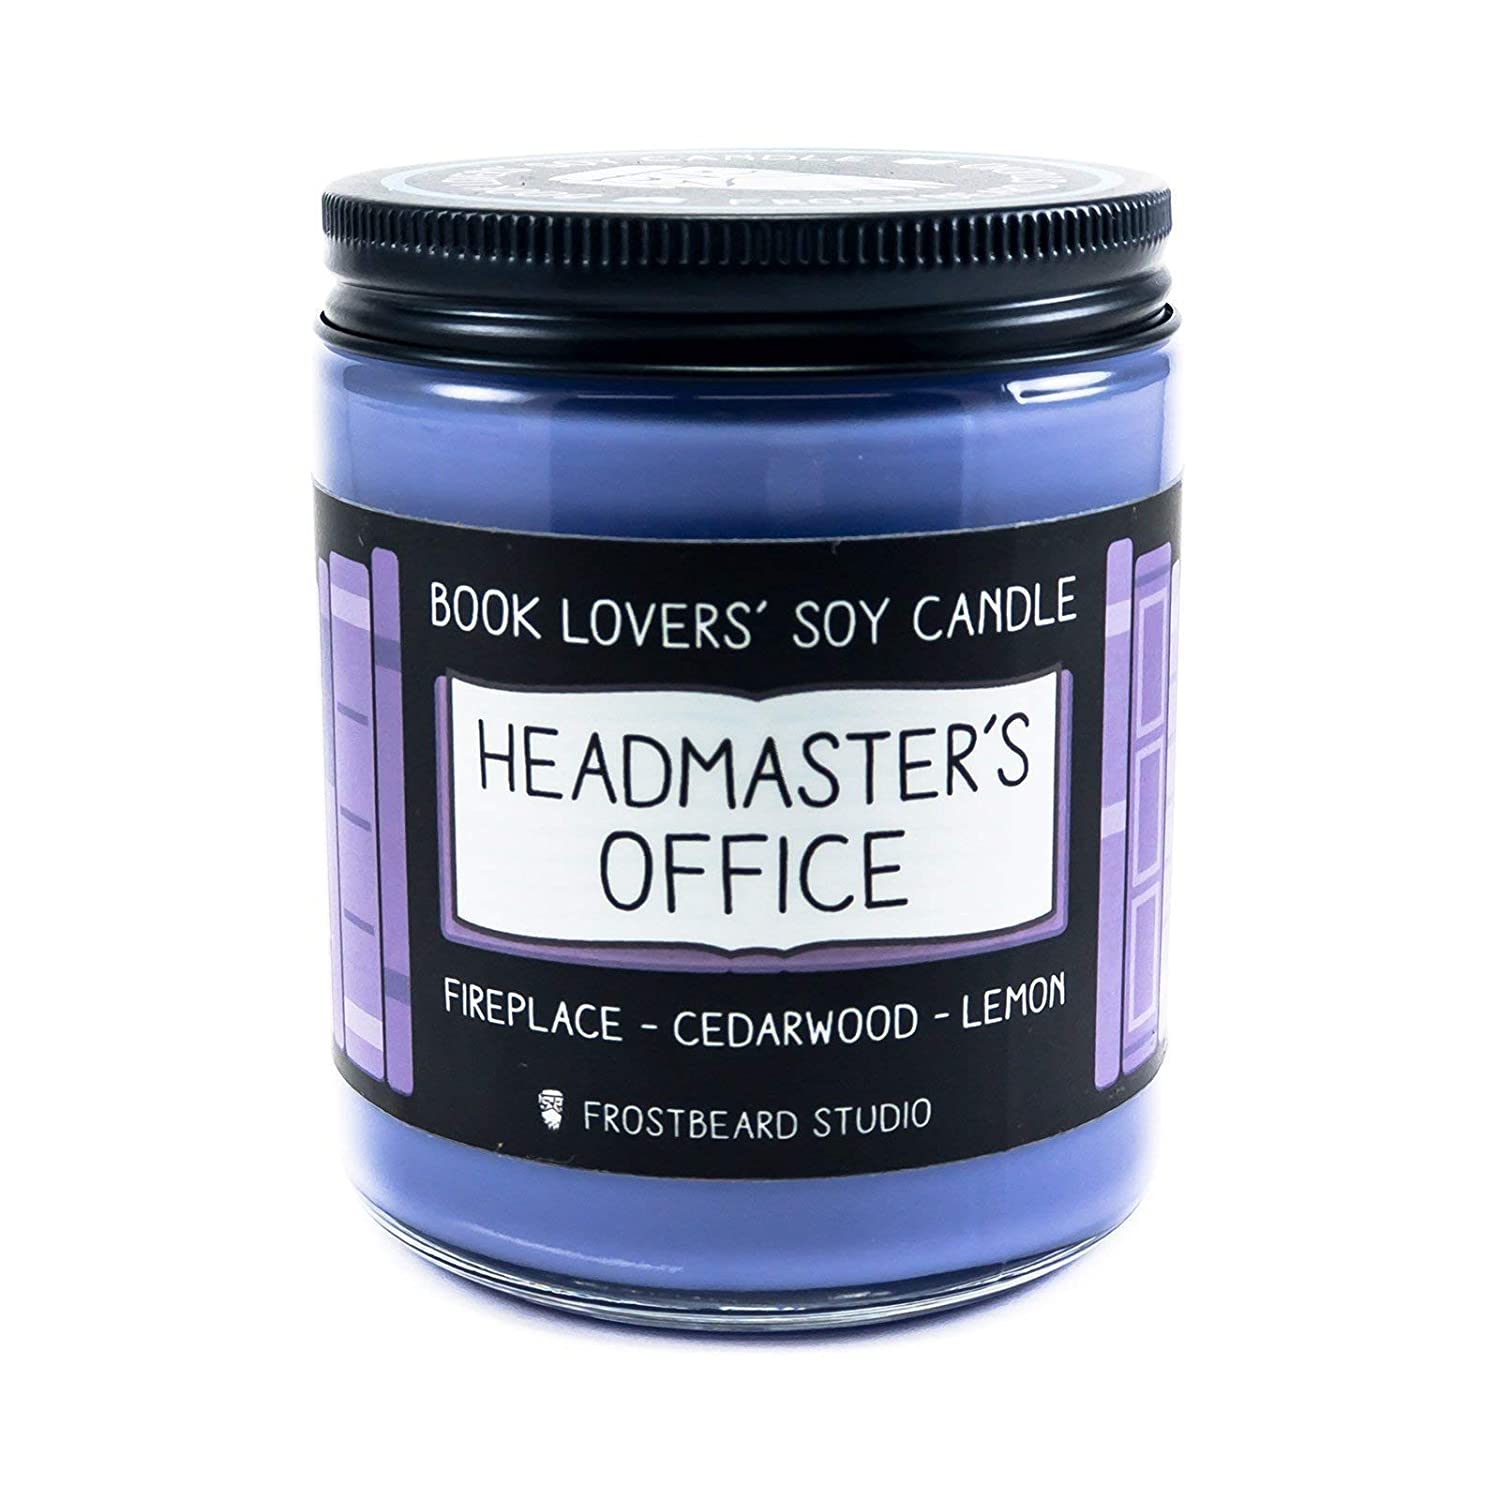 Headmaster's Office - Book Lovers' Soy Candle - 8oz Jar